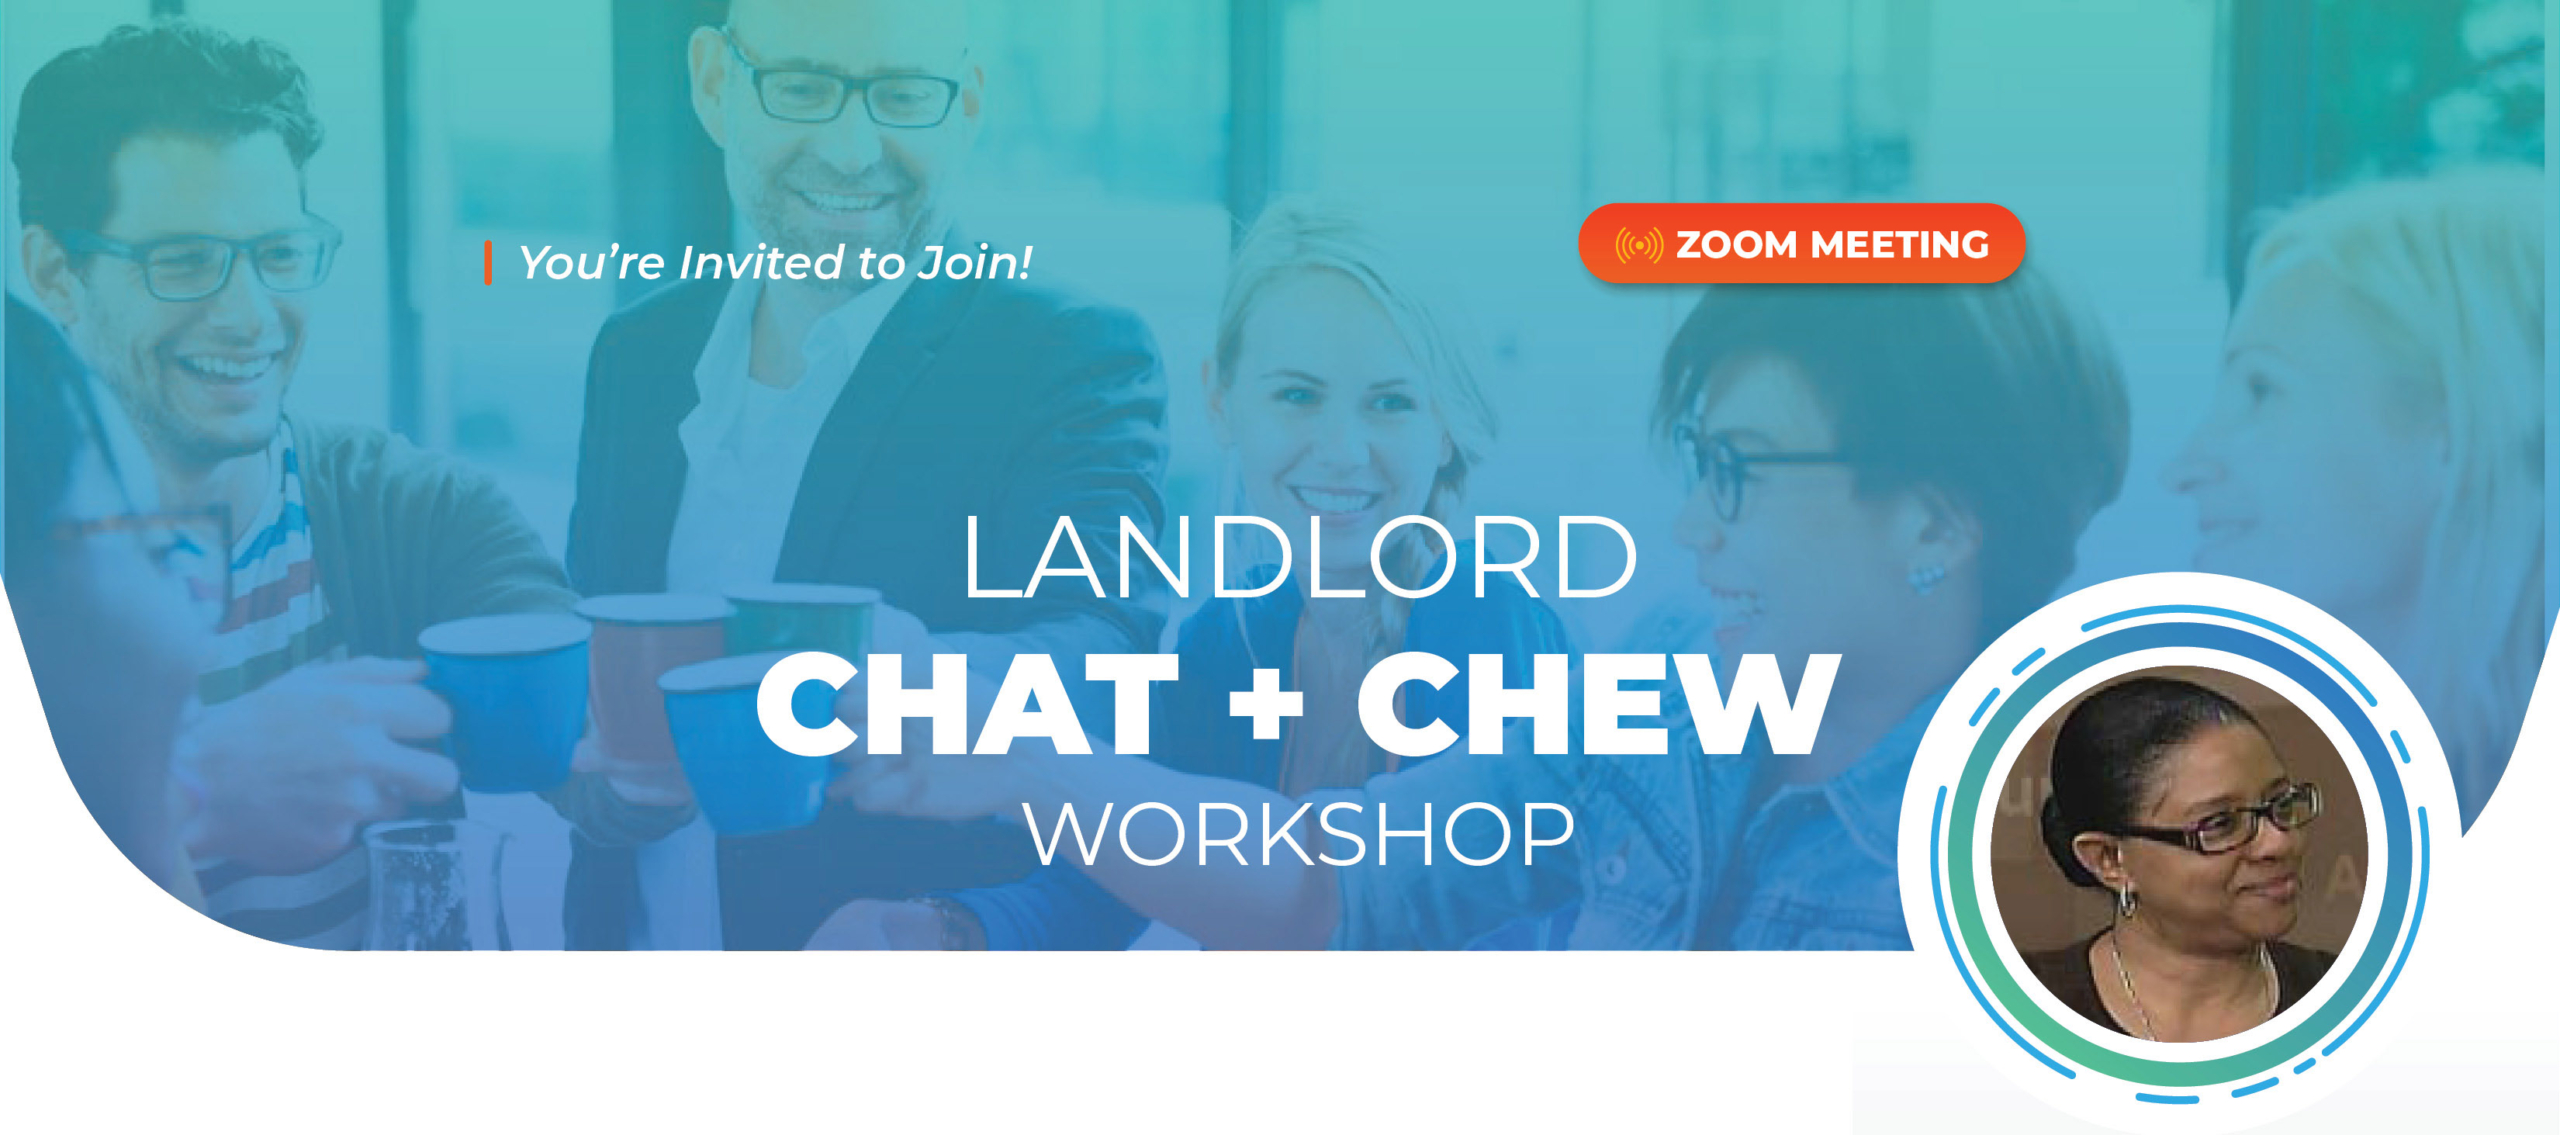 chat and chew workshop